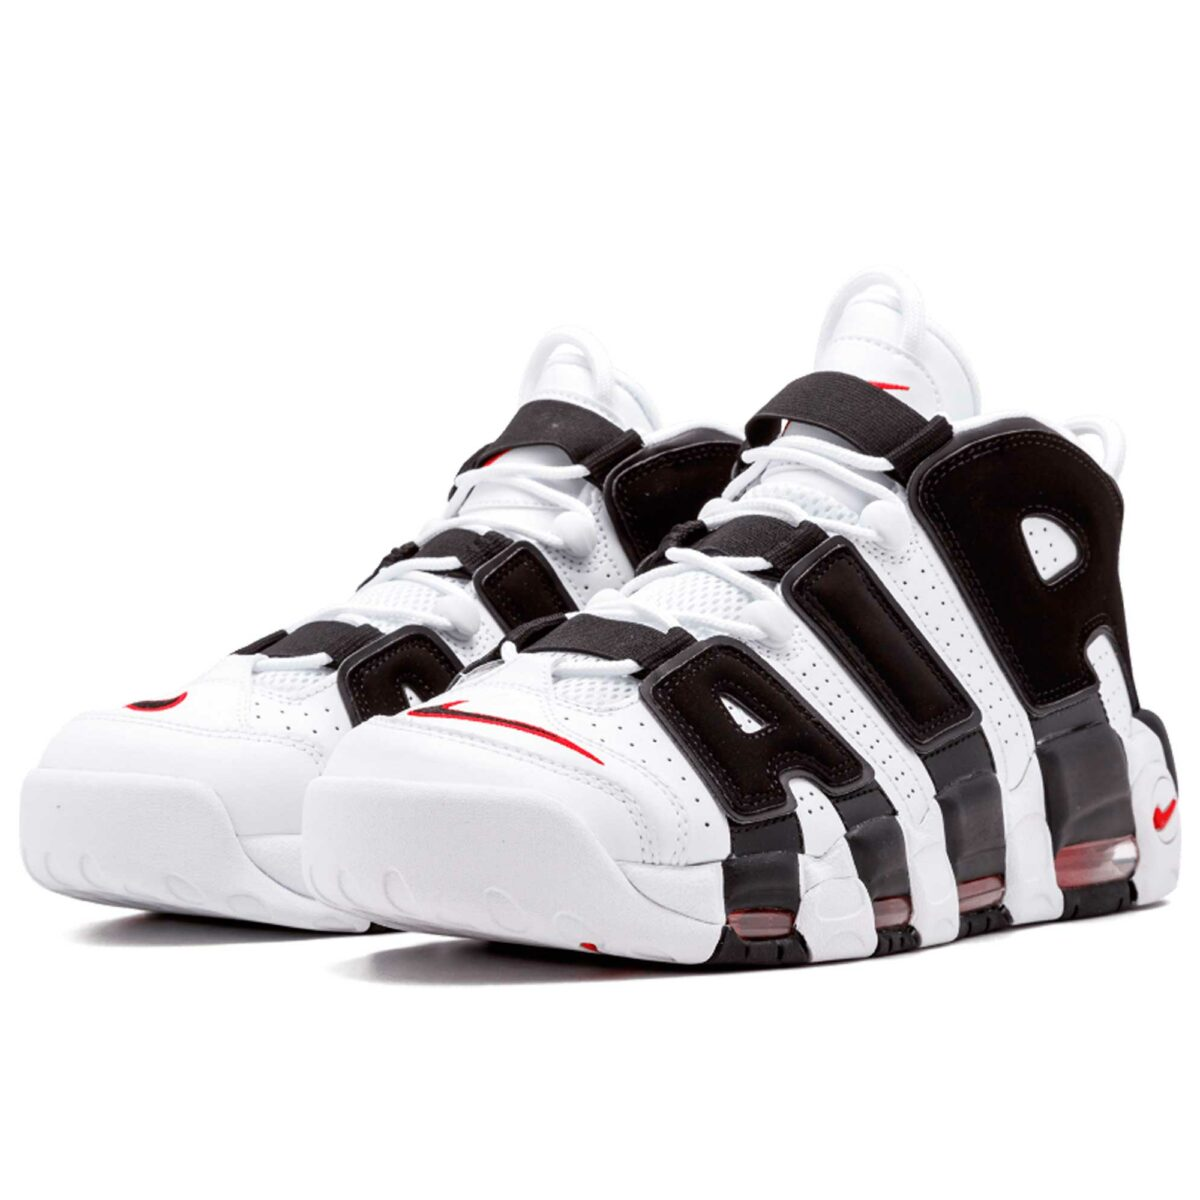 nike air more uptempo white black unversity red 414962-105 купить